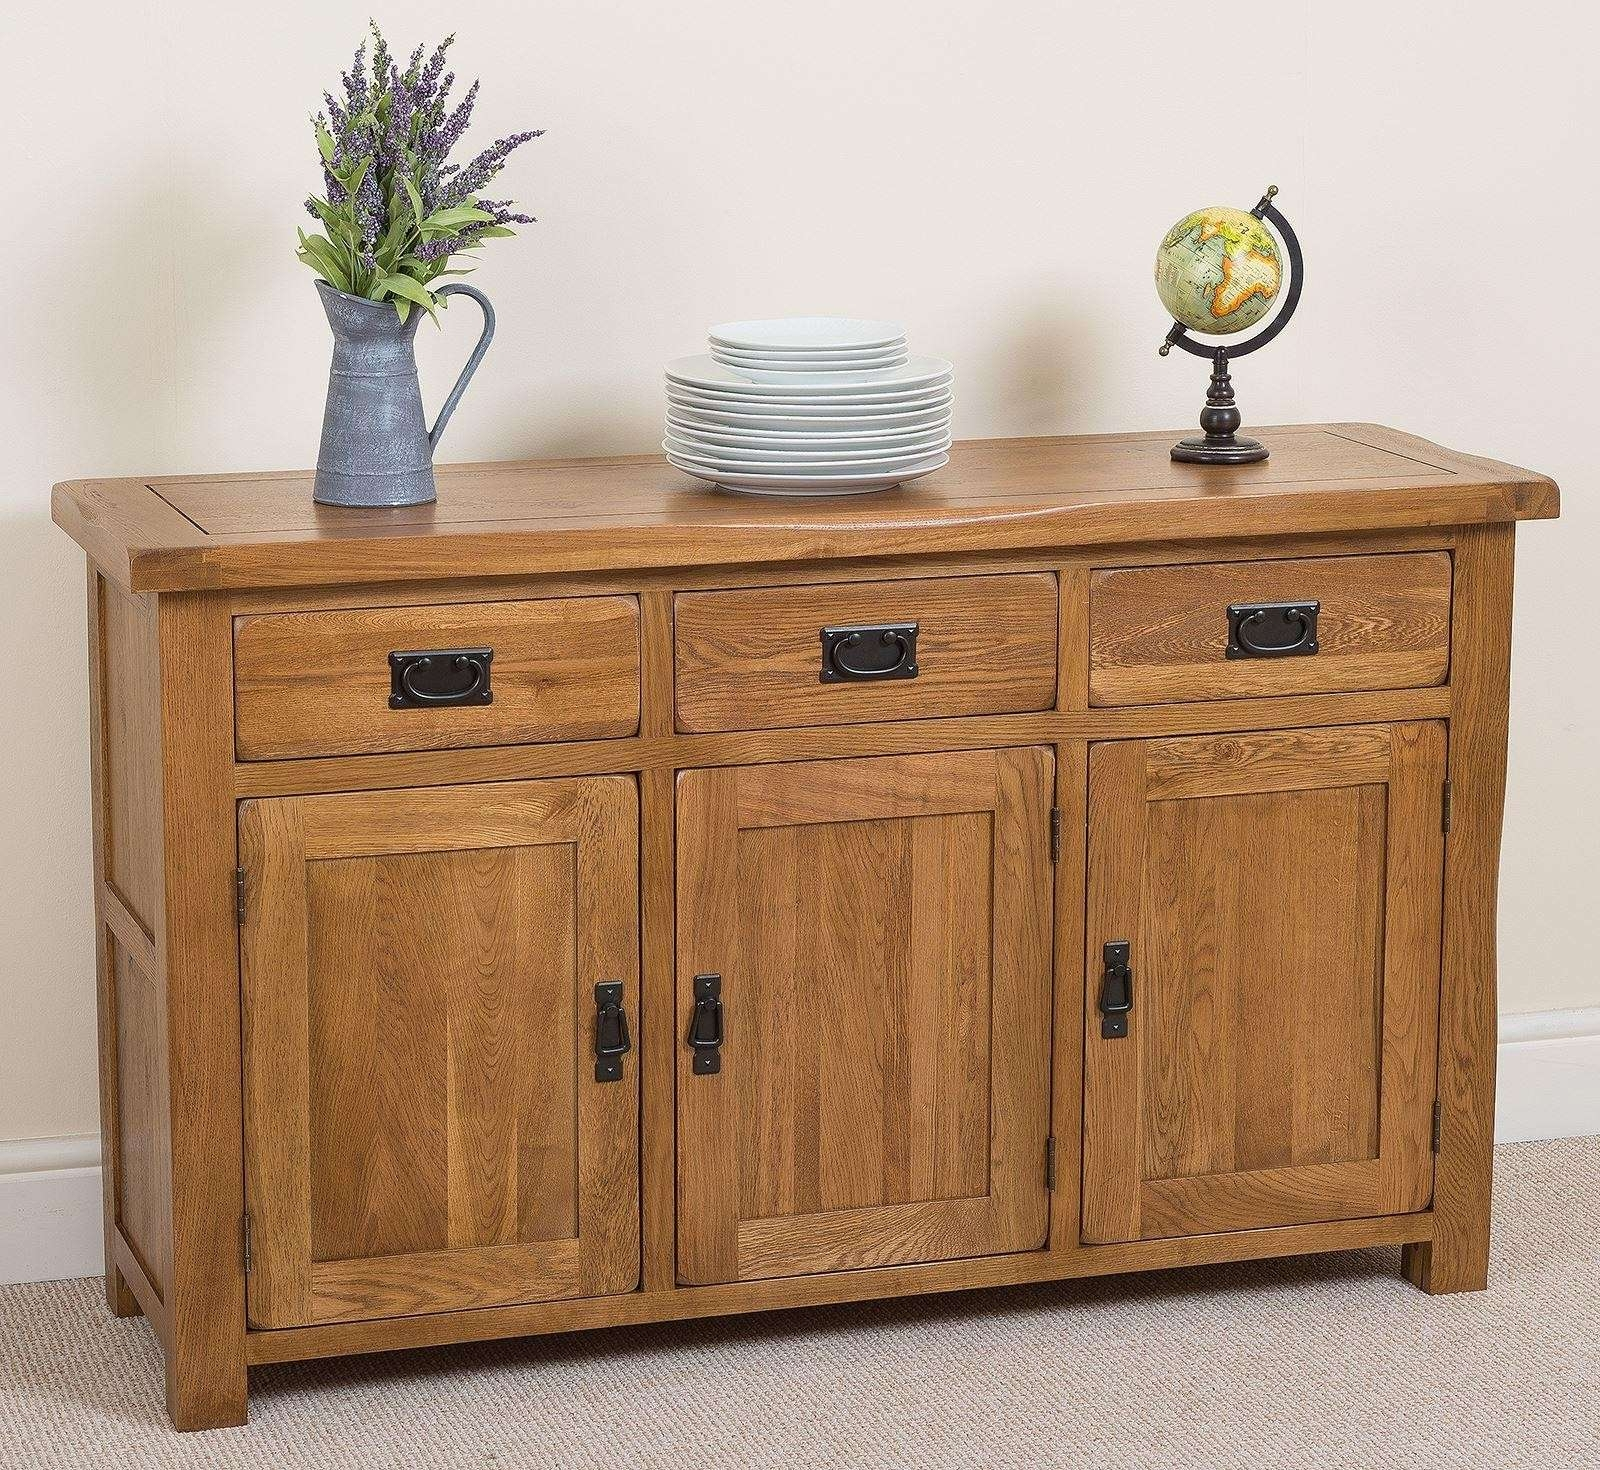 Cotswold Large Oak Sideboard | Free Uk Delivery For Large Sideboards (View 3 of 20)